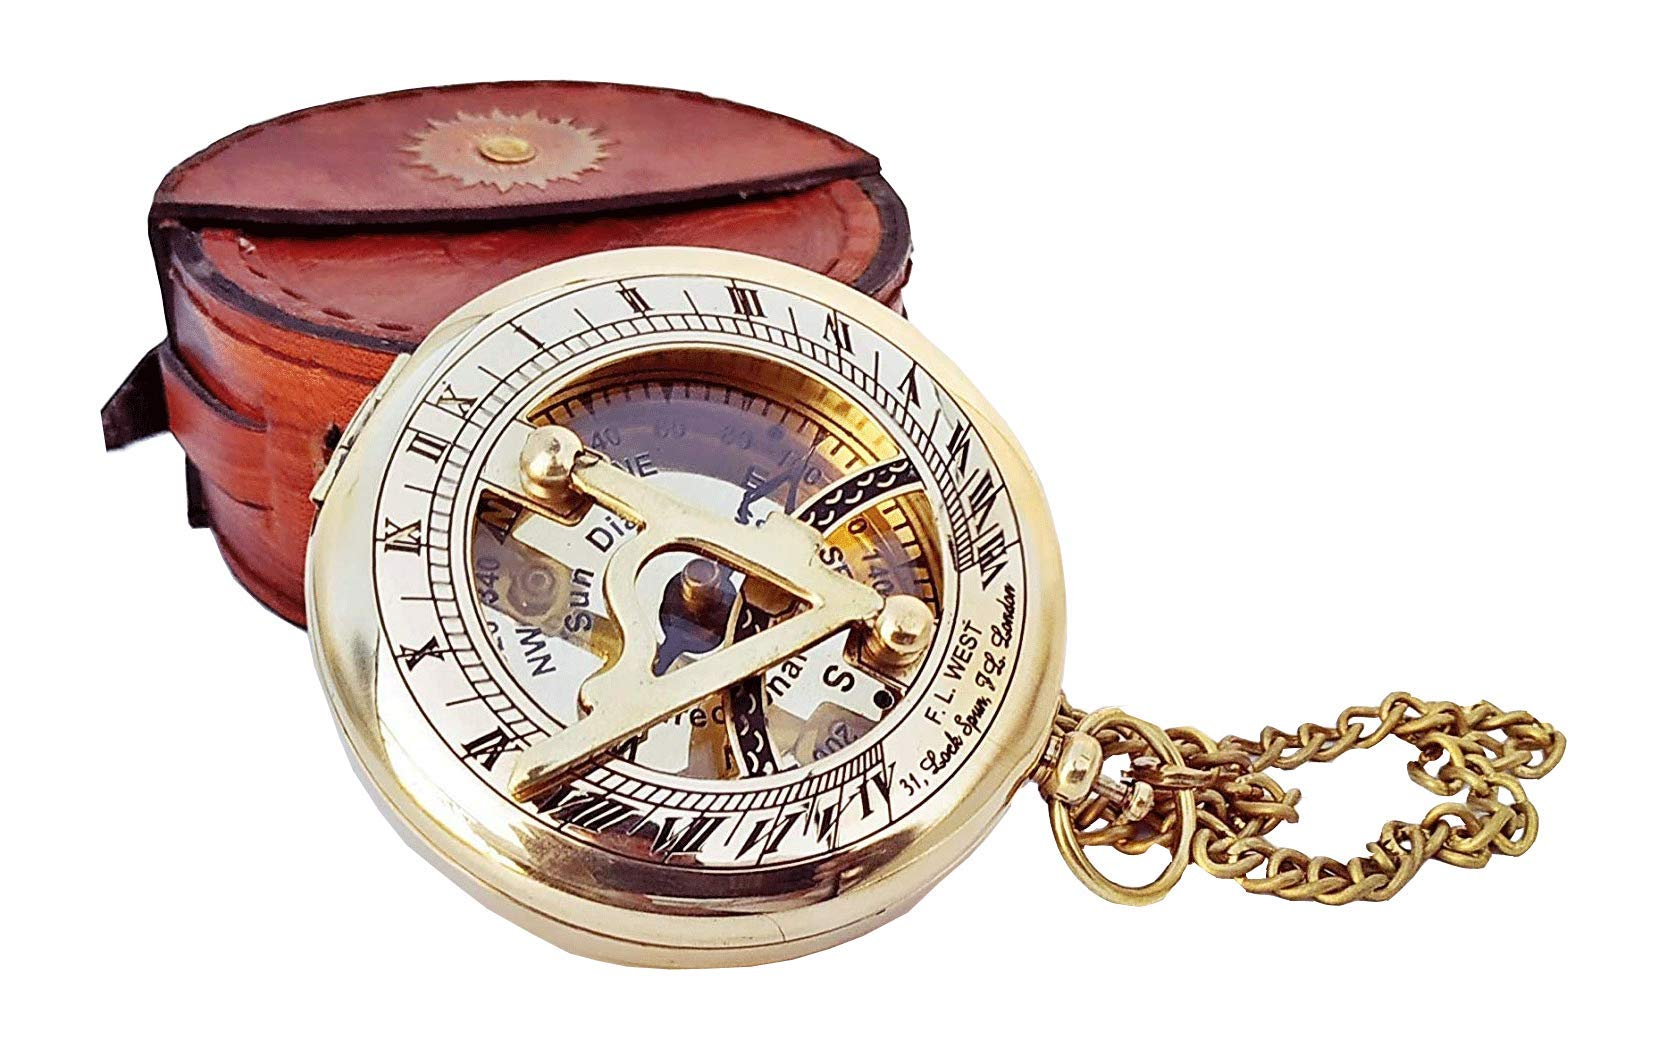 Brass Sundial Compass with Leather Case and Chain - Push Open Compass -Camping/Hiking Steampunk Accessory - Golden Finish - Beautiful -Sundial Clock Anniversary/ Valentine's Gift (Brass and Leather) by A S Handicrafts